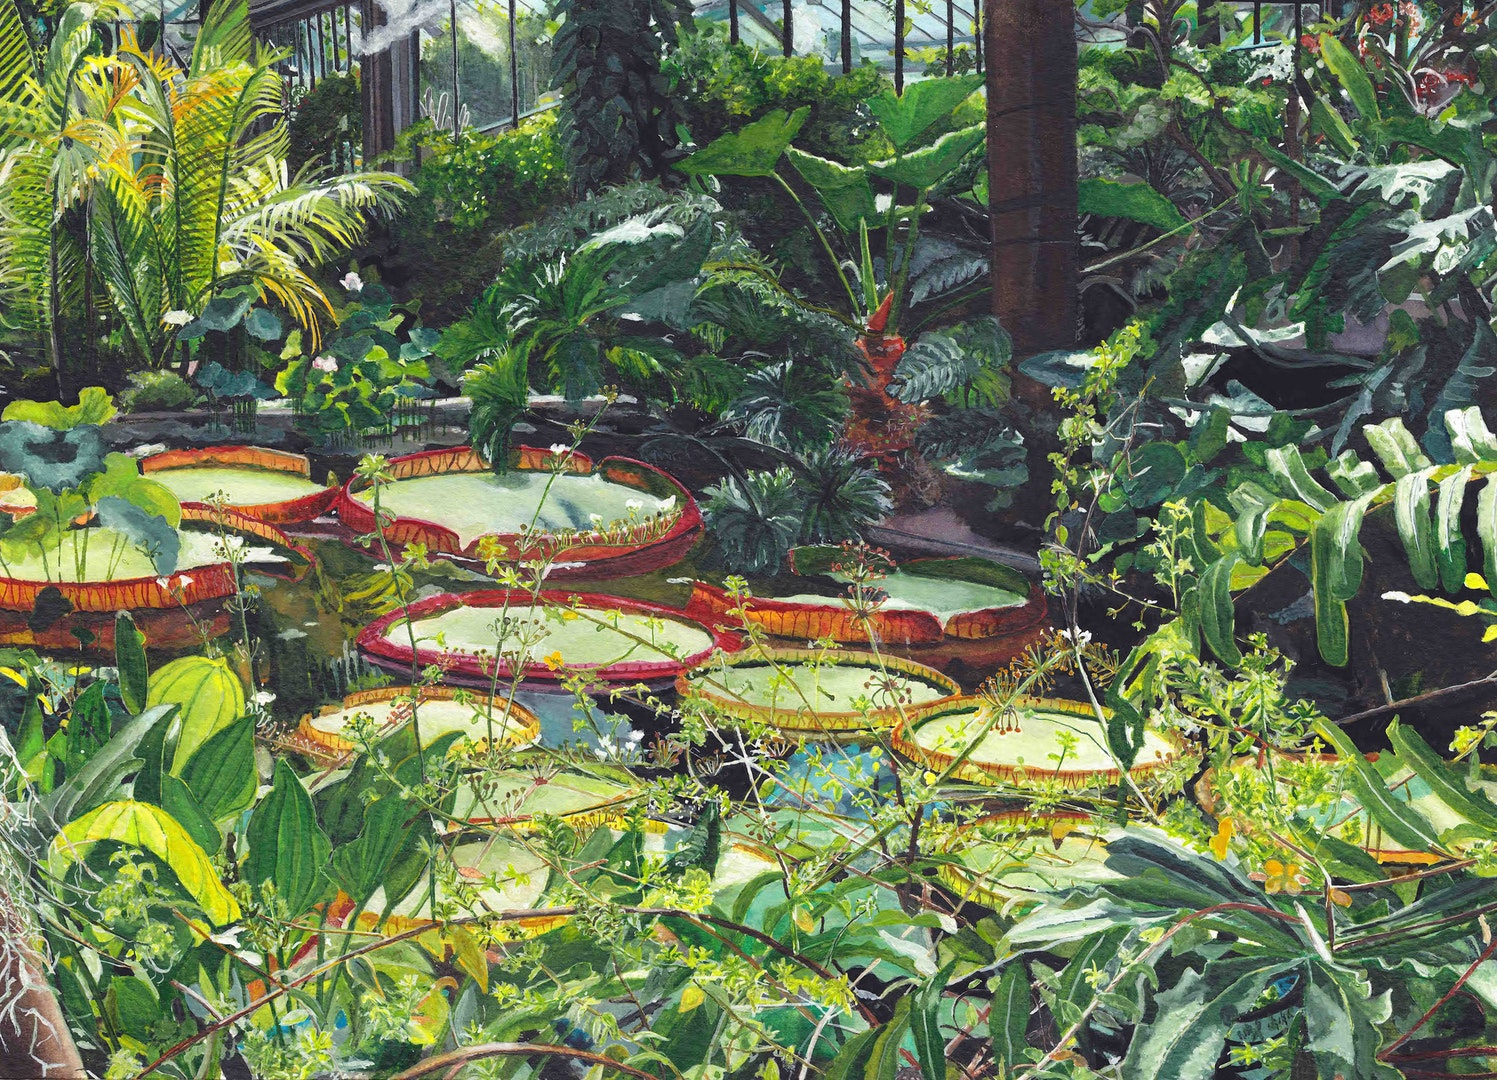 'Kew's Princess of Wales Conservatory', Lucy Cariou, Watercolour on paper, 25 x 34 cm